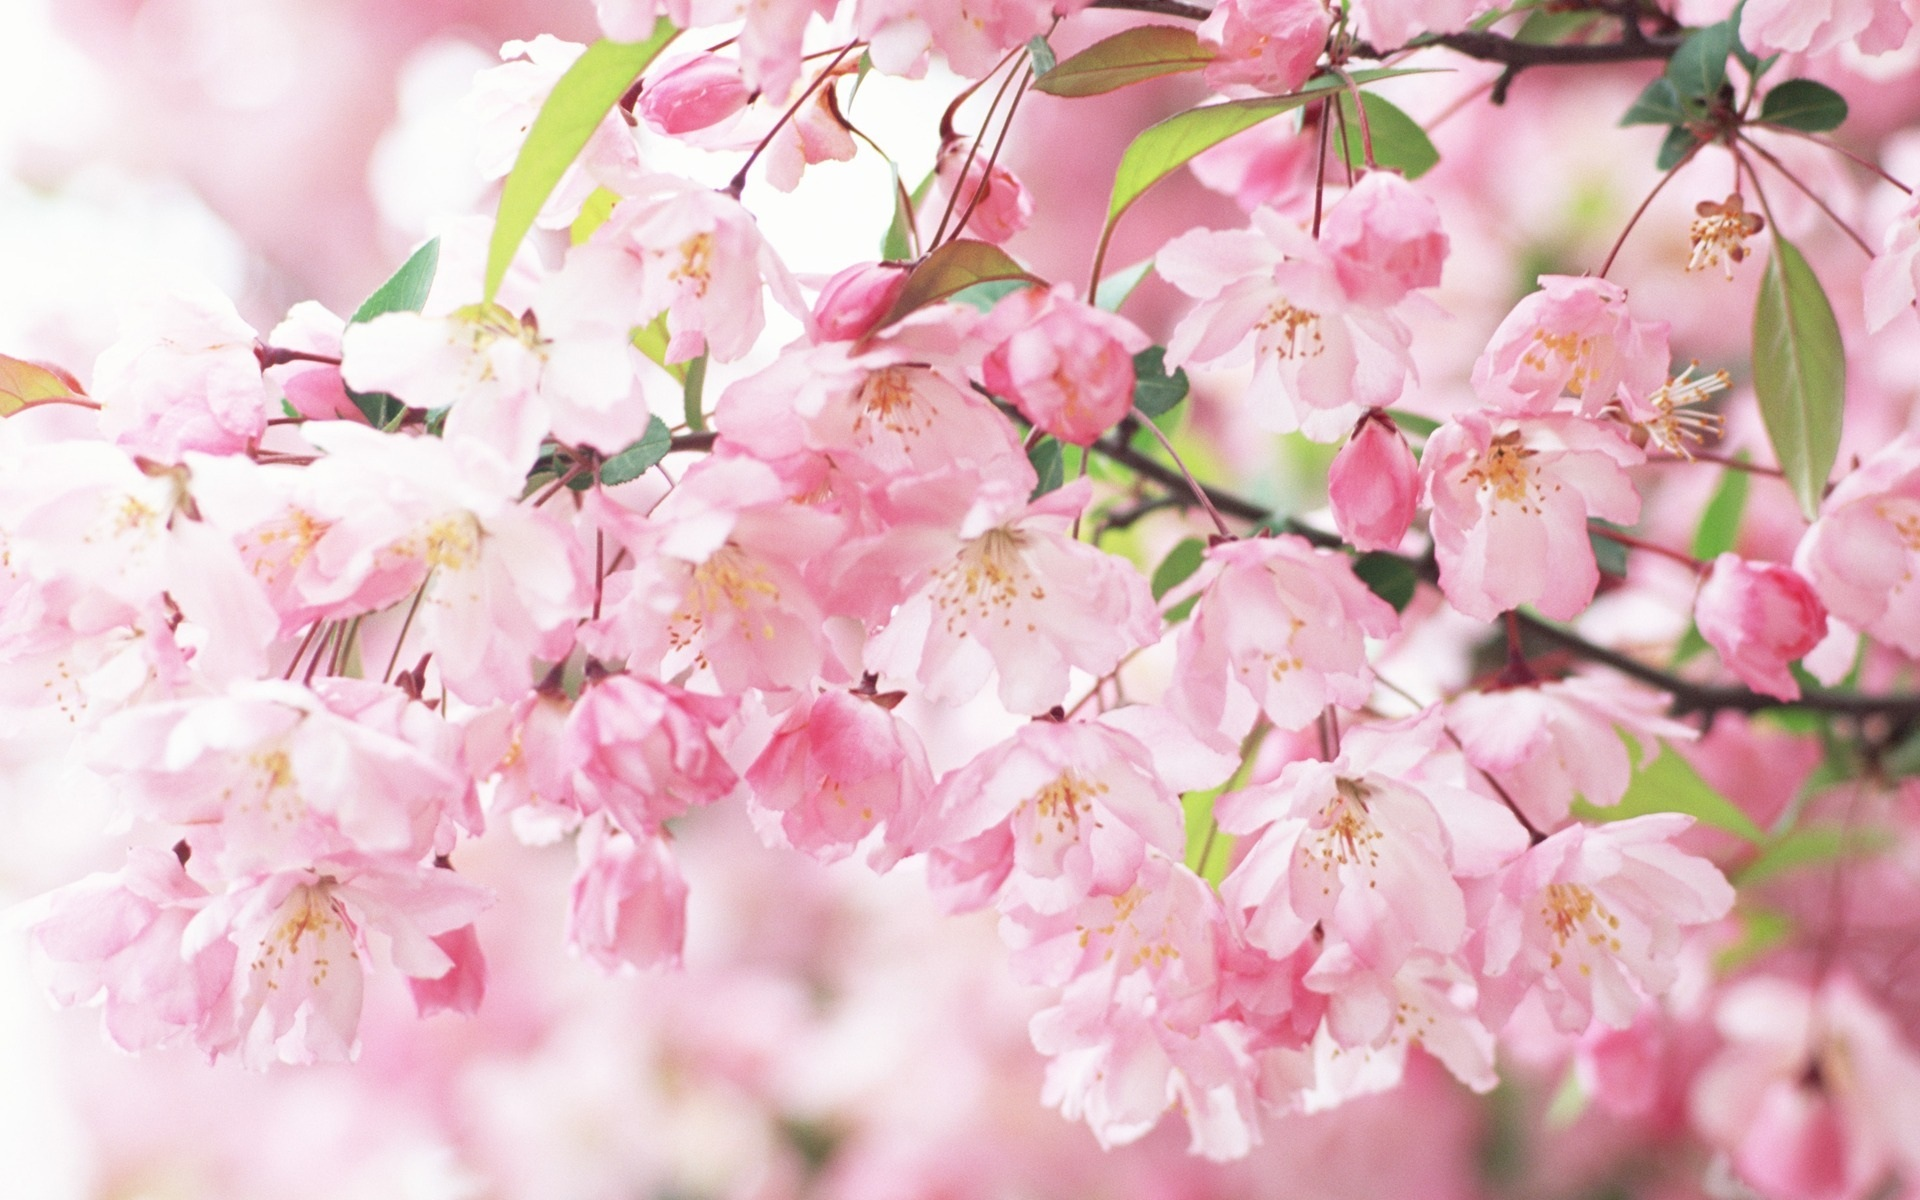 Cherry Blossom Wallpaper HD - WallpaperSafari